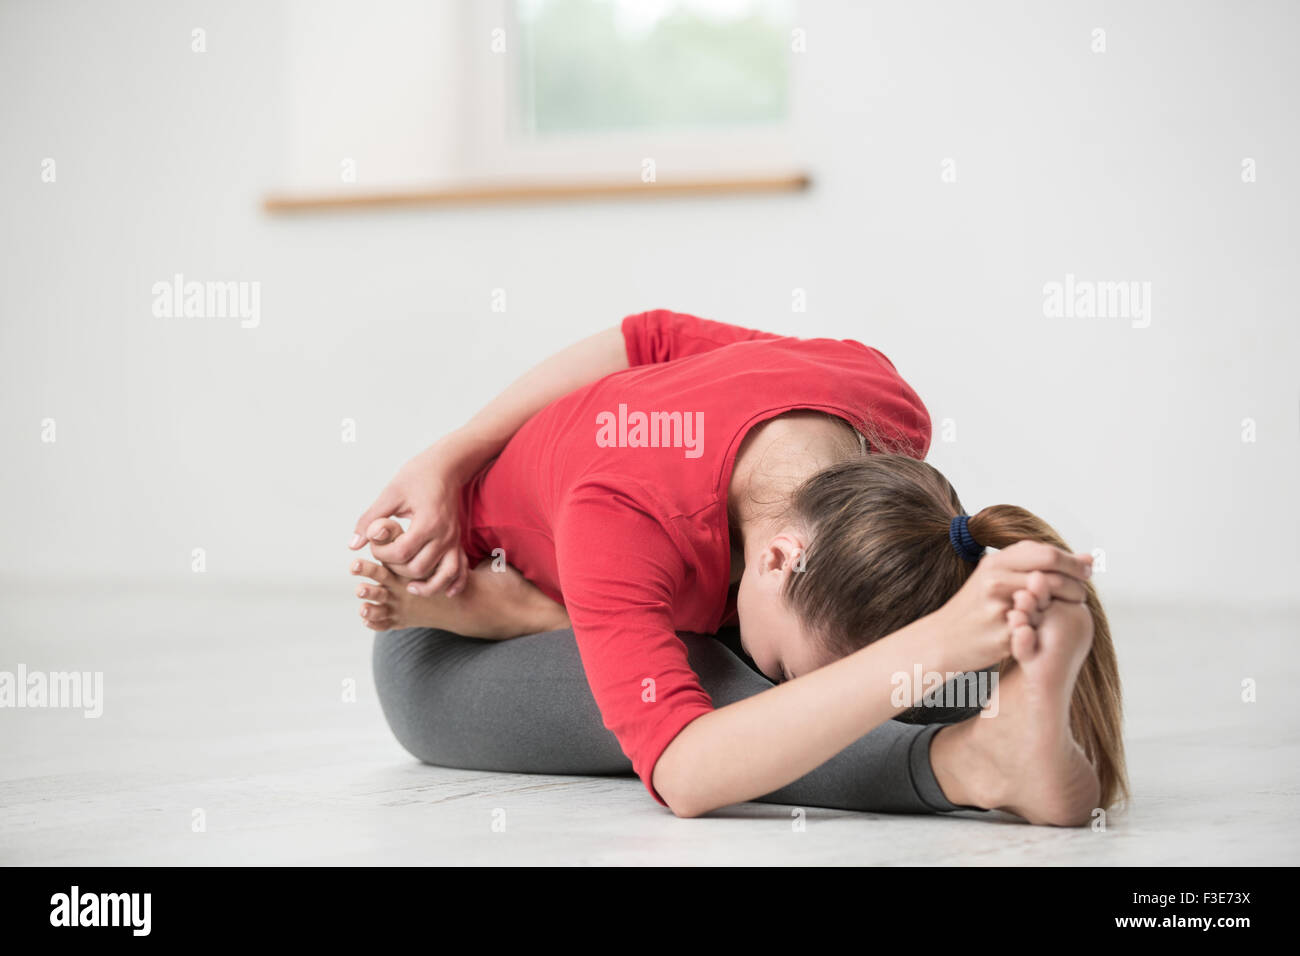 Portrait of a young woman doing stretching exercises in gym Photo Stock